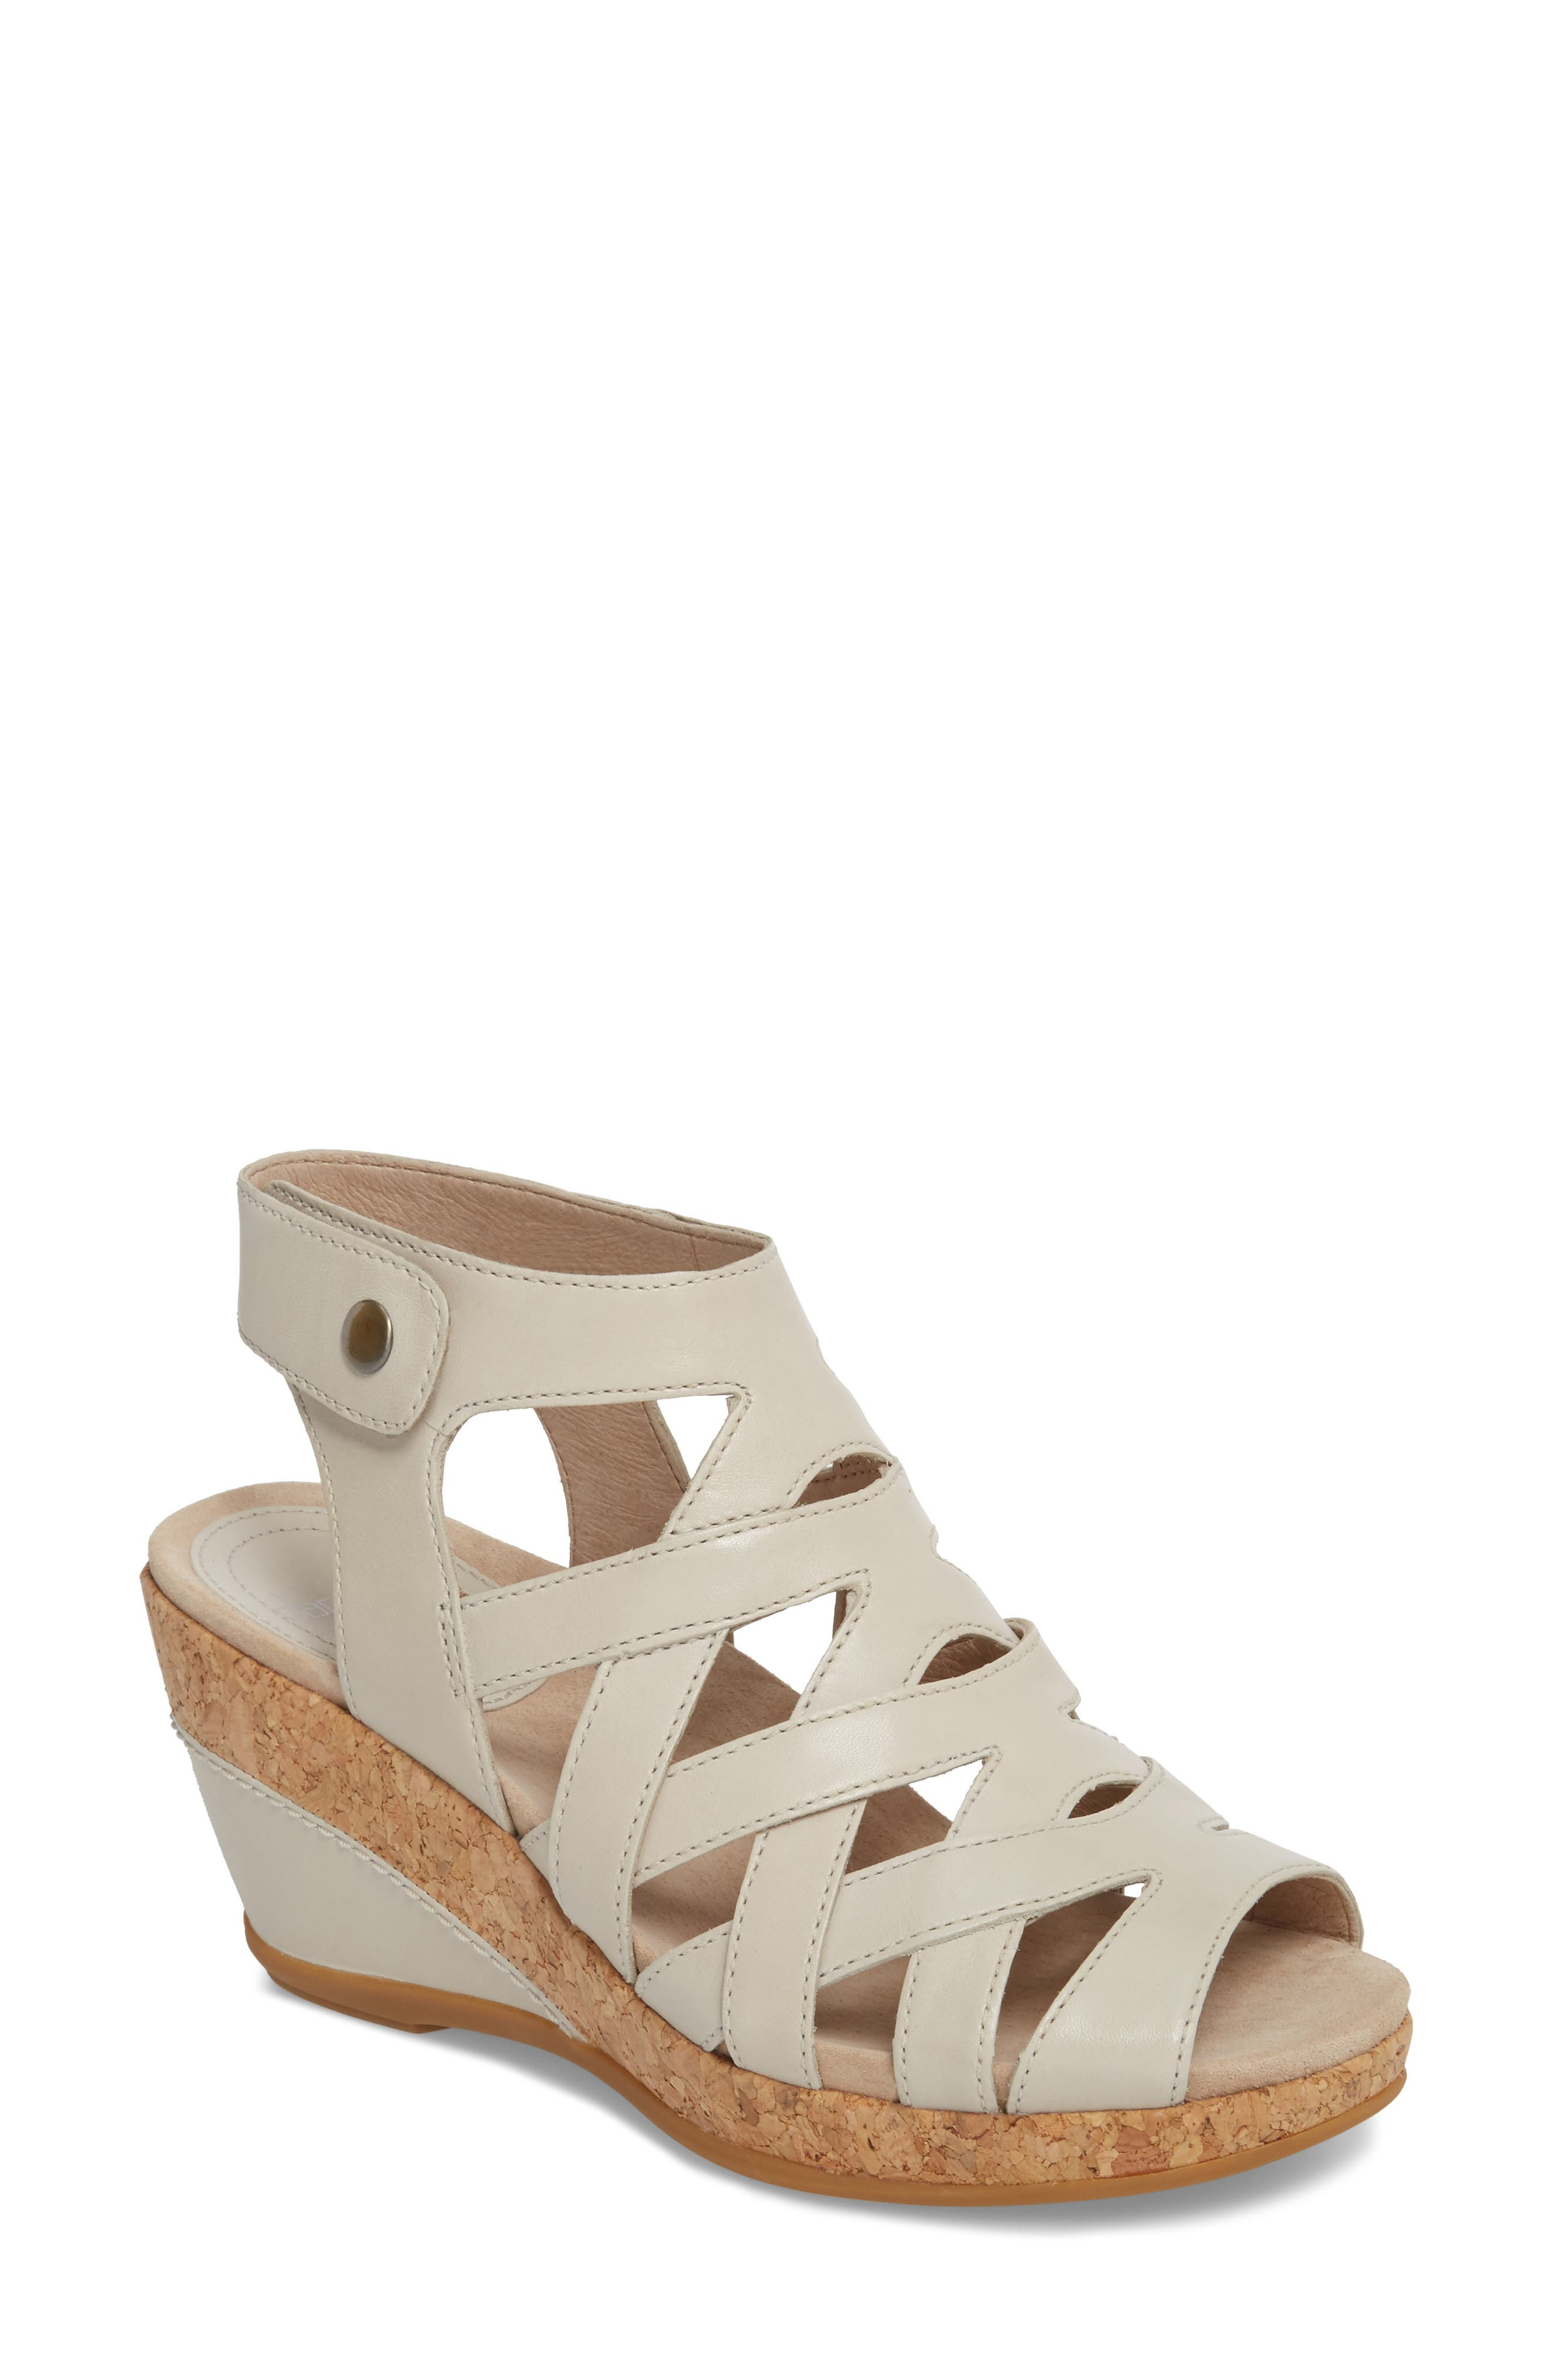 CECILY CAGED WEDGE SANDAL